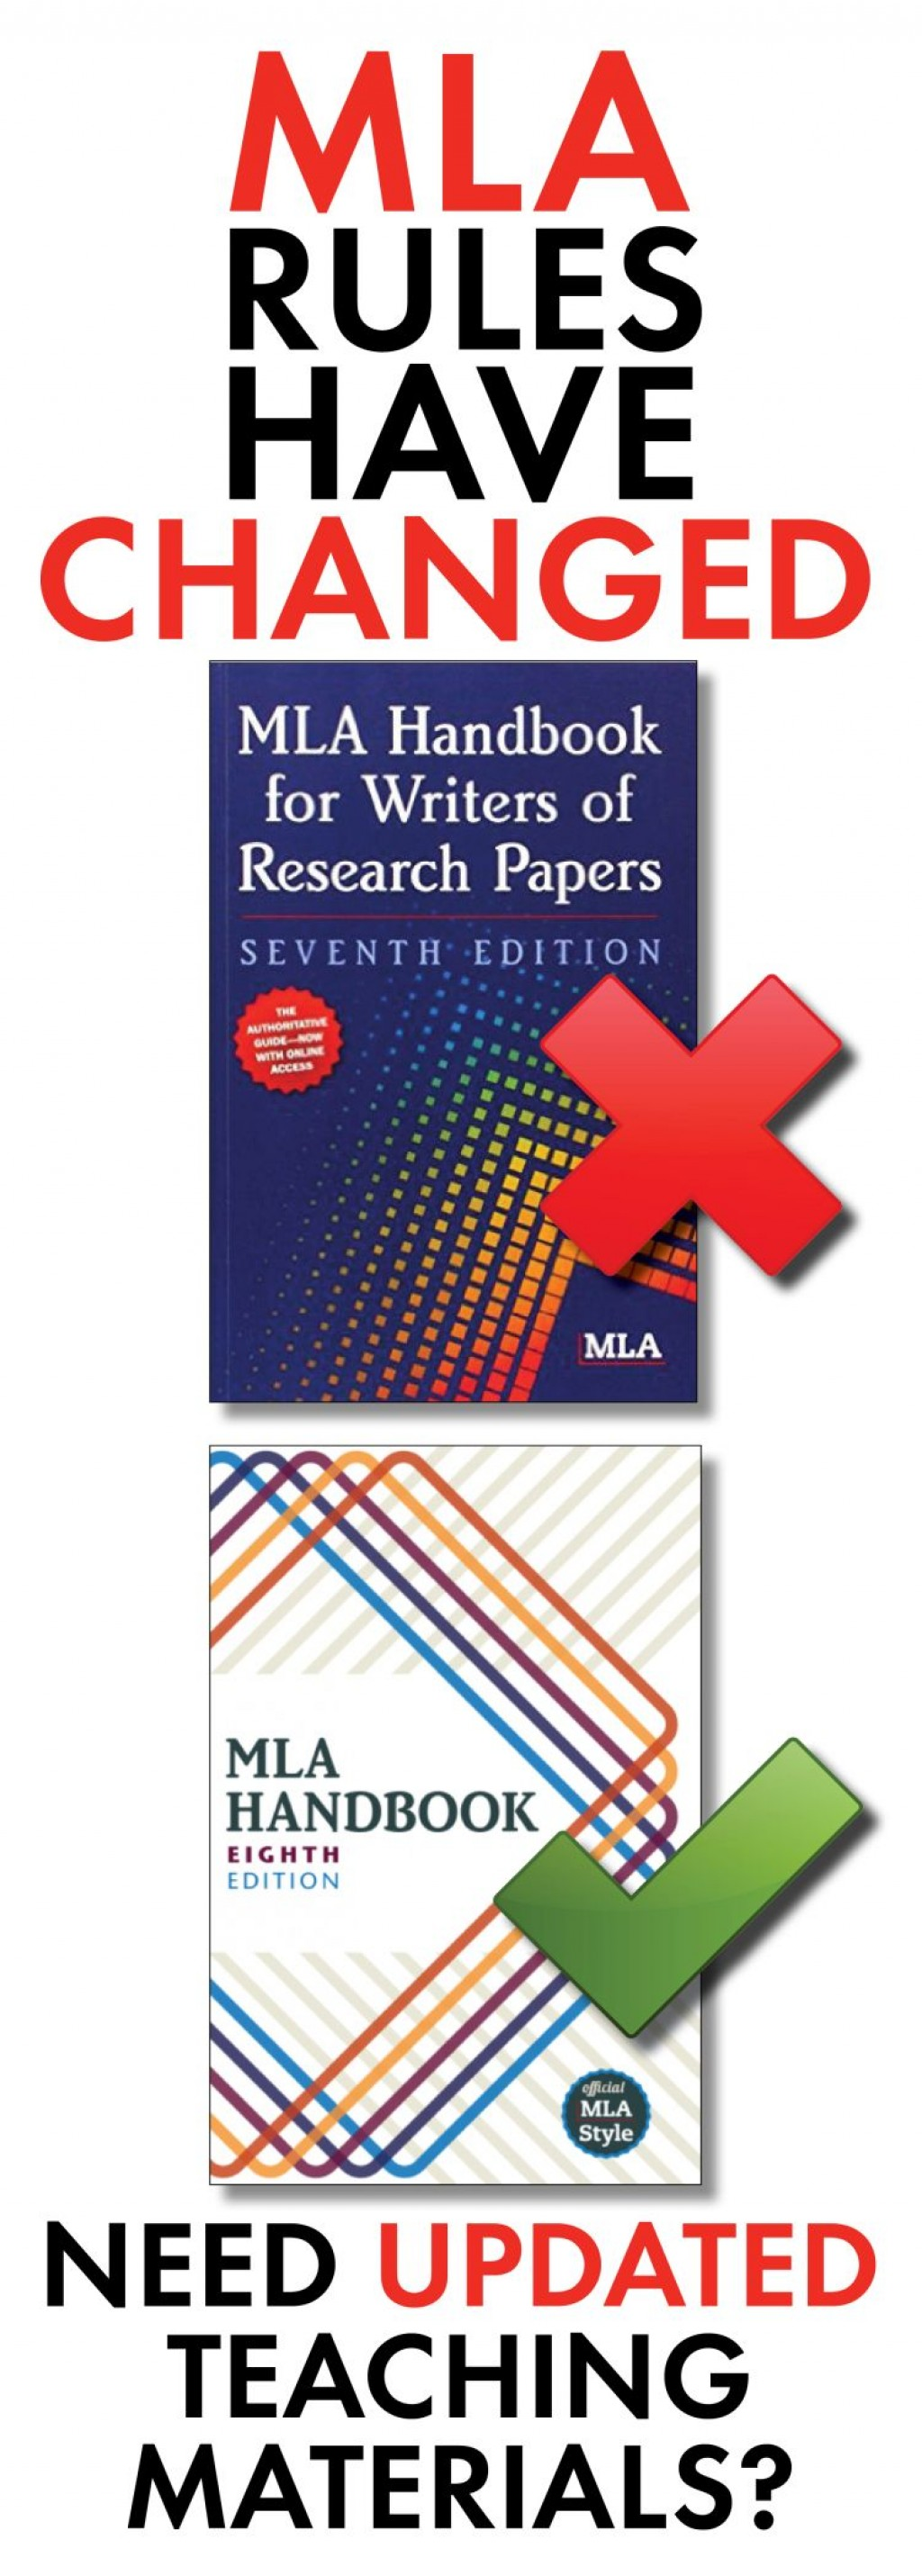 014 Mla Handbook For Writers Of Researchs 8th Edition Unique Research Papers Pdf Free Download Large